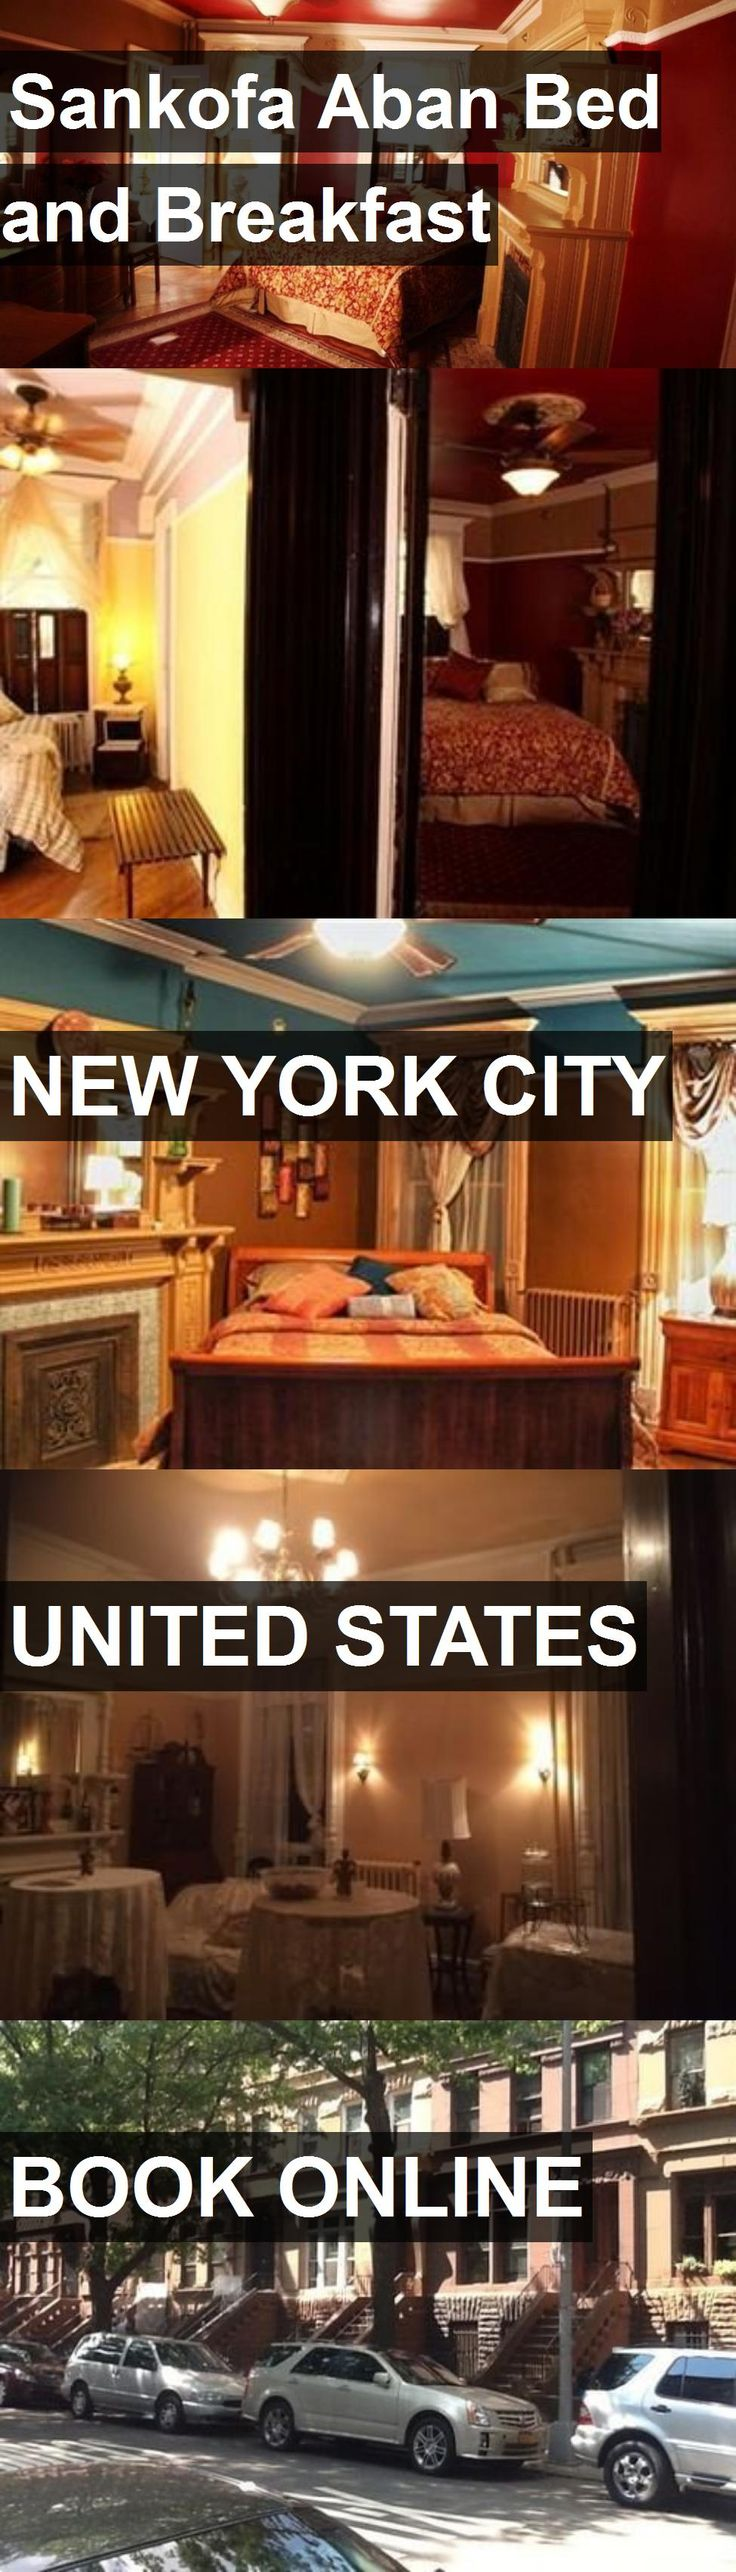 Hotel Sankofa Aban Bed and Breakfast in New York City